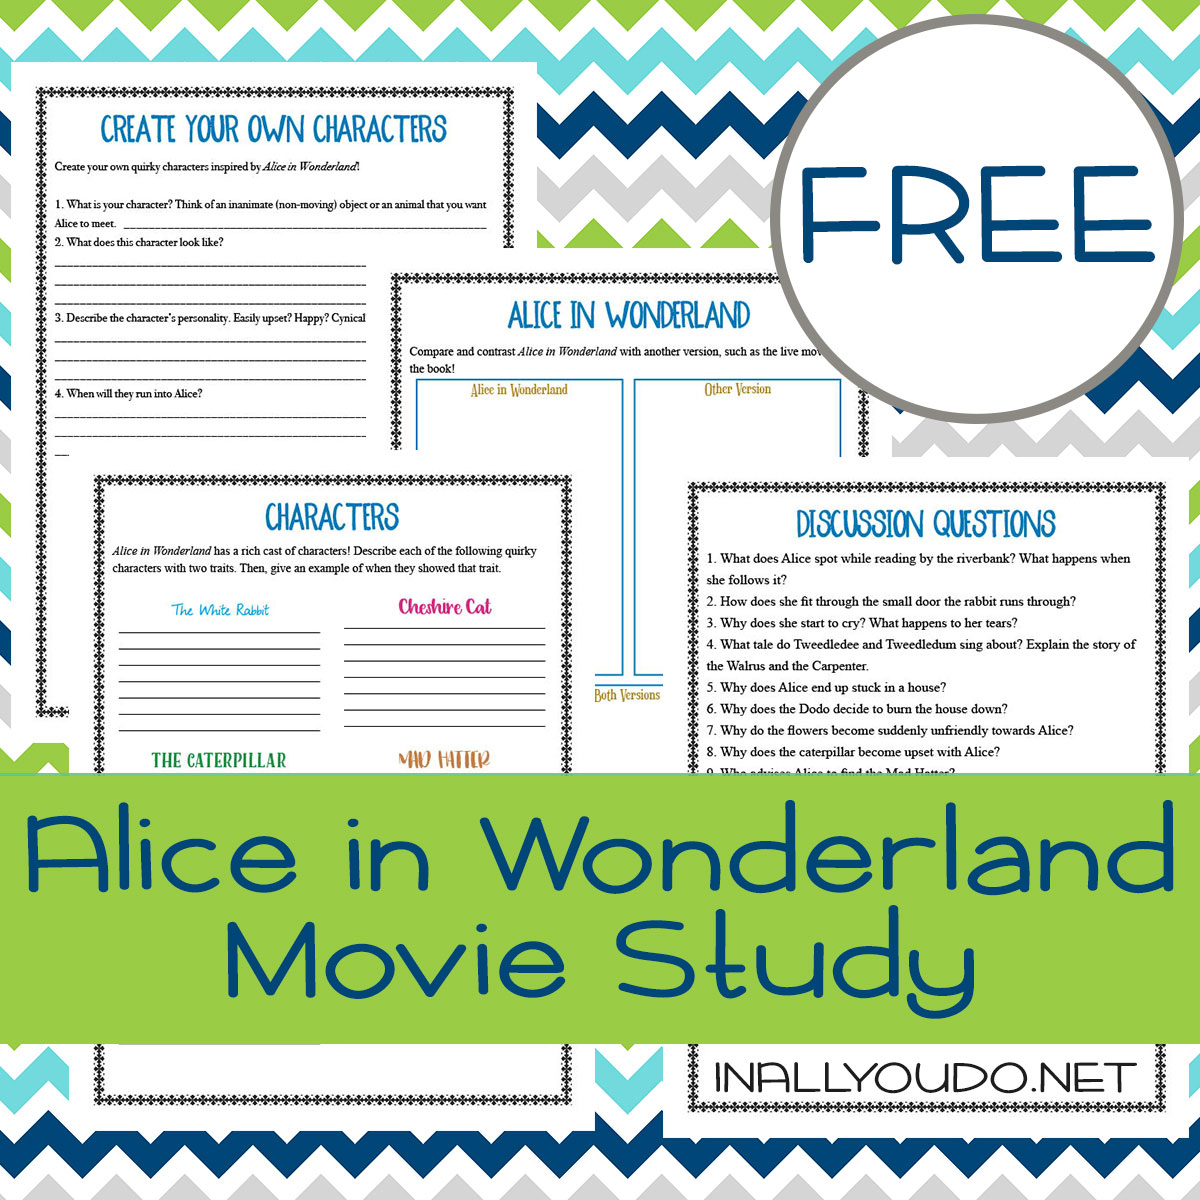 Alice in Wonderland is a classic and a favorite movie for many children (and adults). Now you can add a little fun to your next movie night with this movie study! This is geared toward elementary ages, but could easily be adapted for middle schoolers too. #AliceinWonderland #moviestudy #movies #iaydhomeschoolers #iaydhsmoms